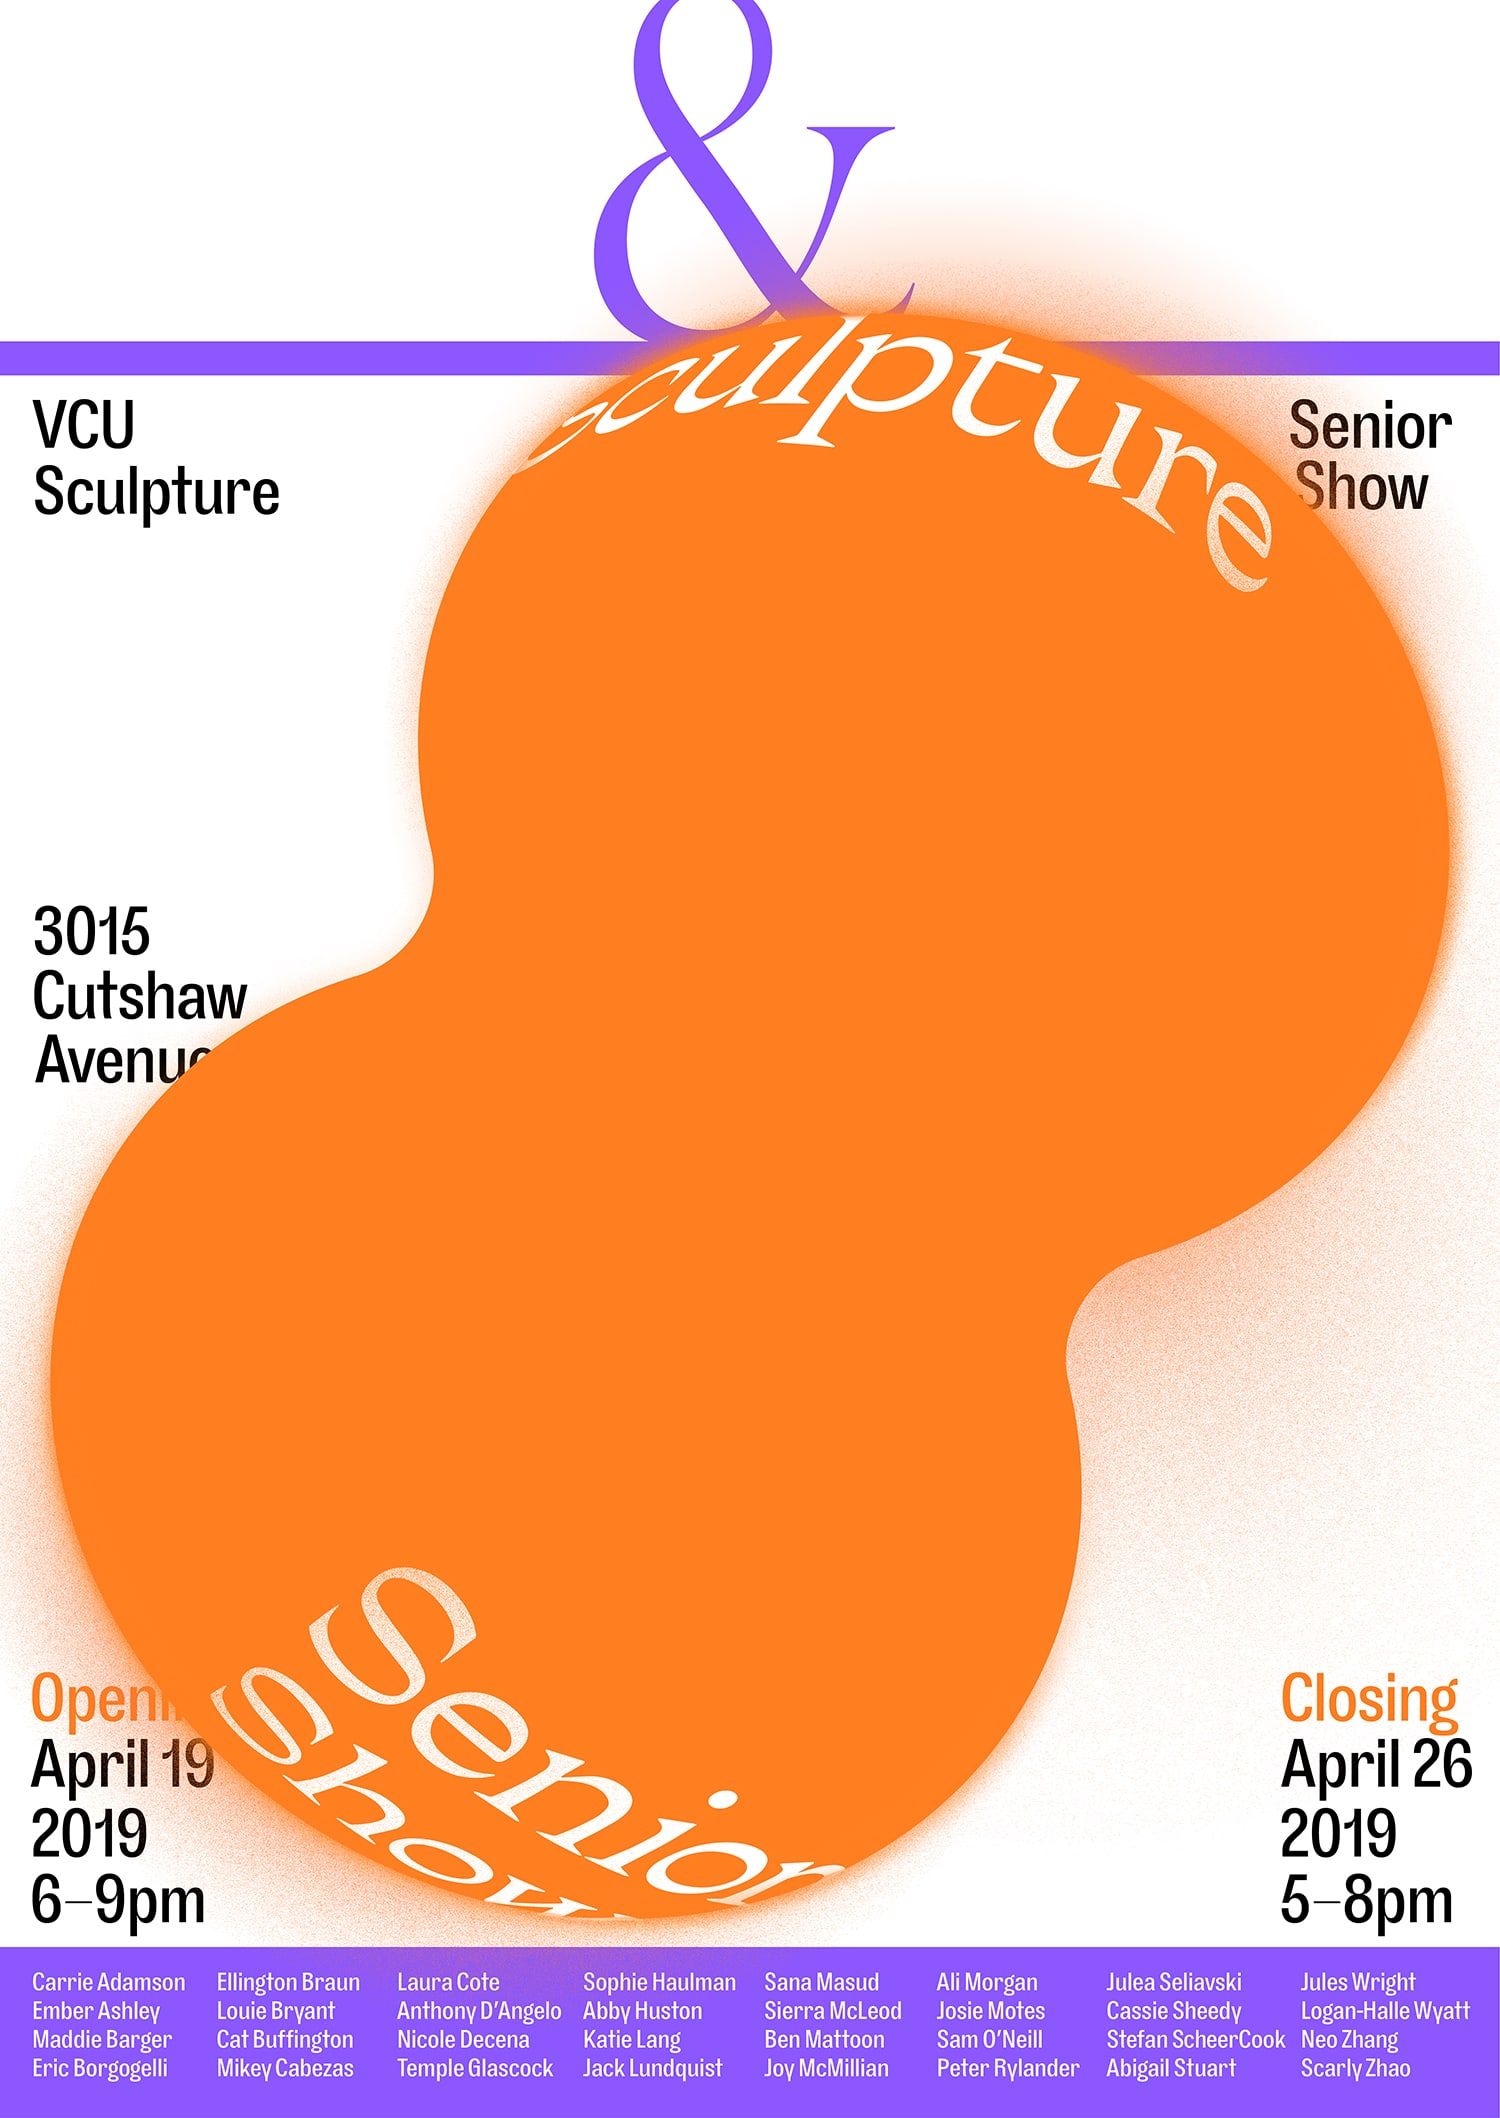 VCU Sculpture Thesis Show promotional materials